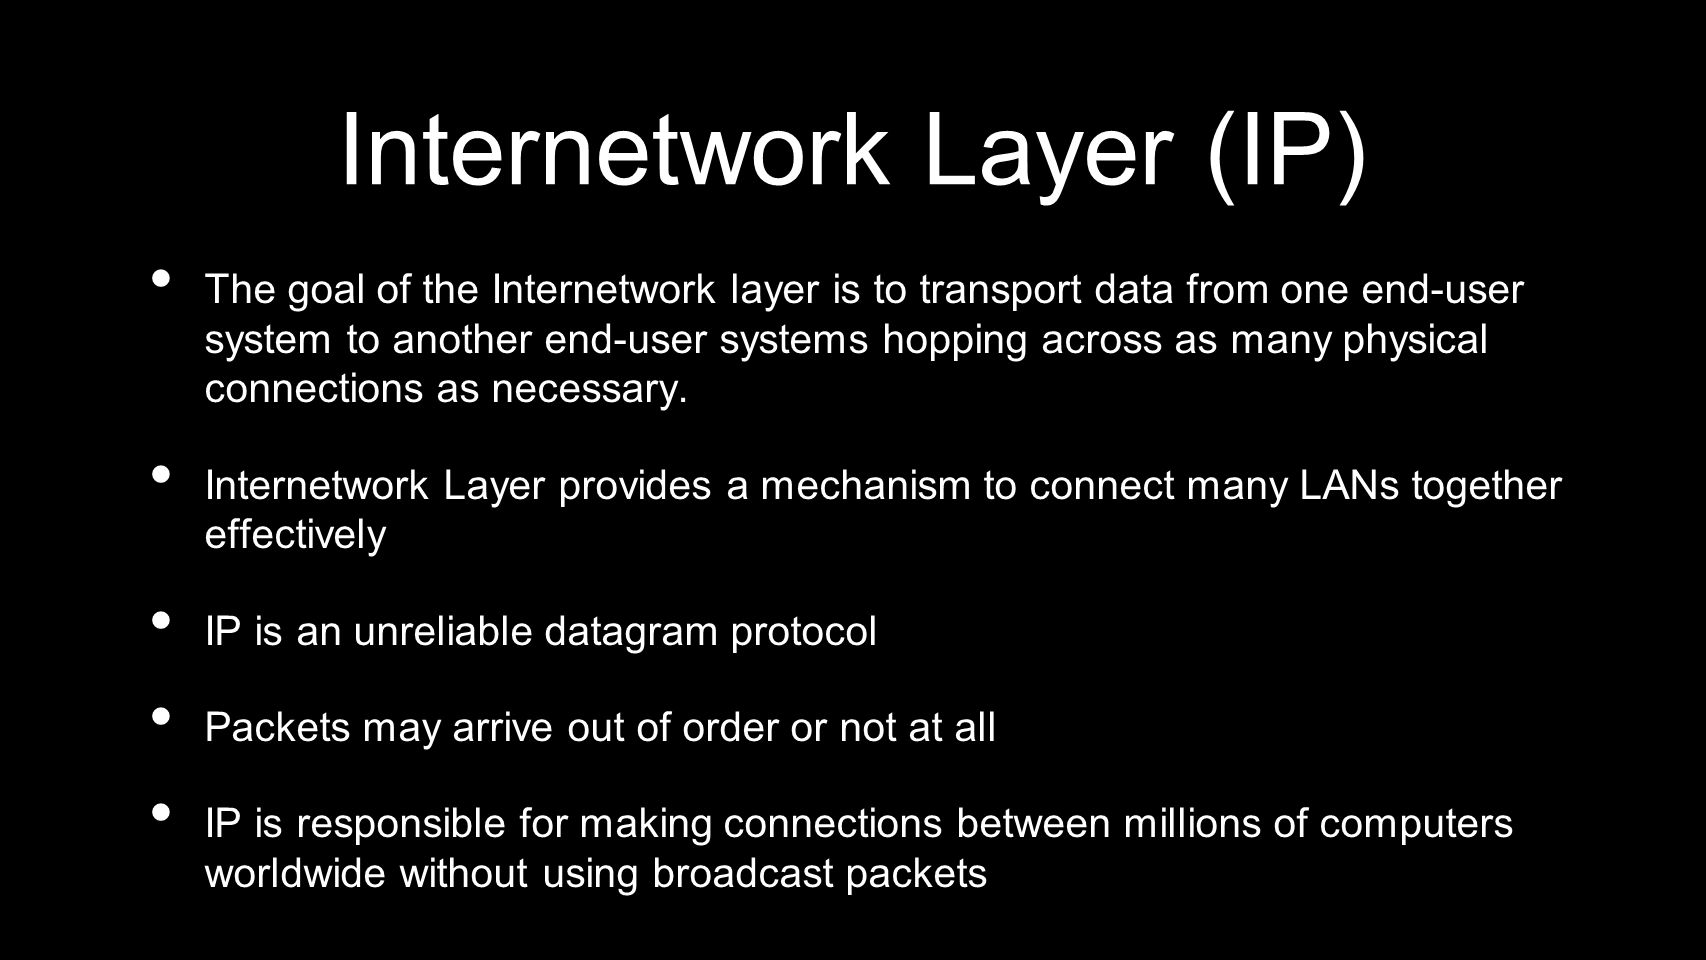 Internetwork Layer (IP) The goal of the Internetwork layer is to transport data from one end-user system to another end-user systems hopping across as